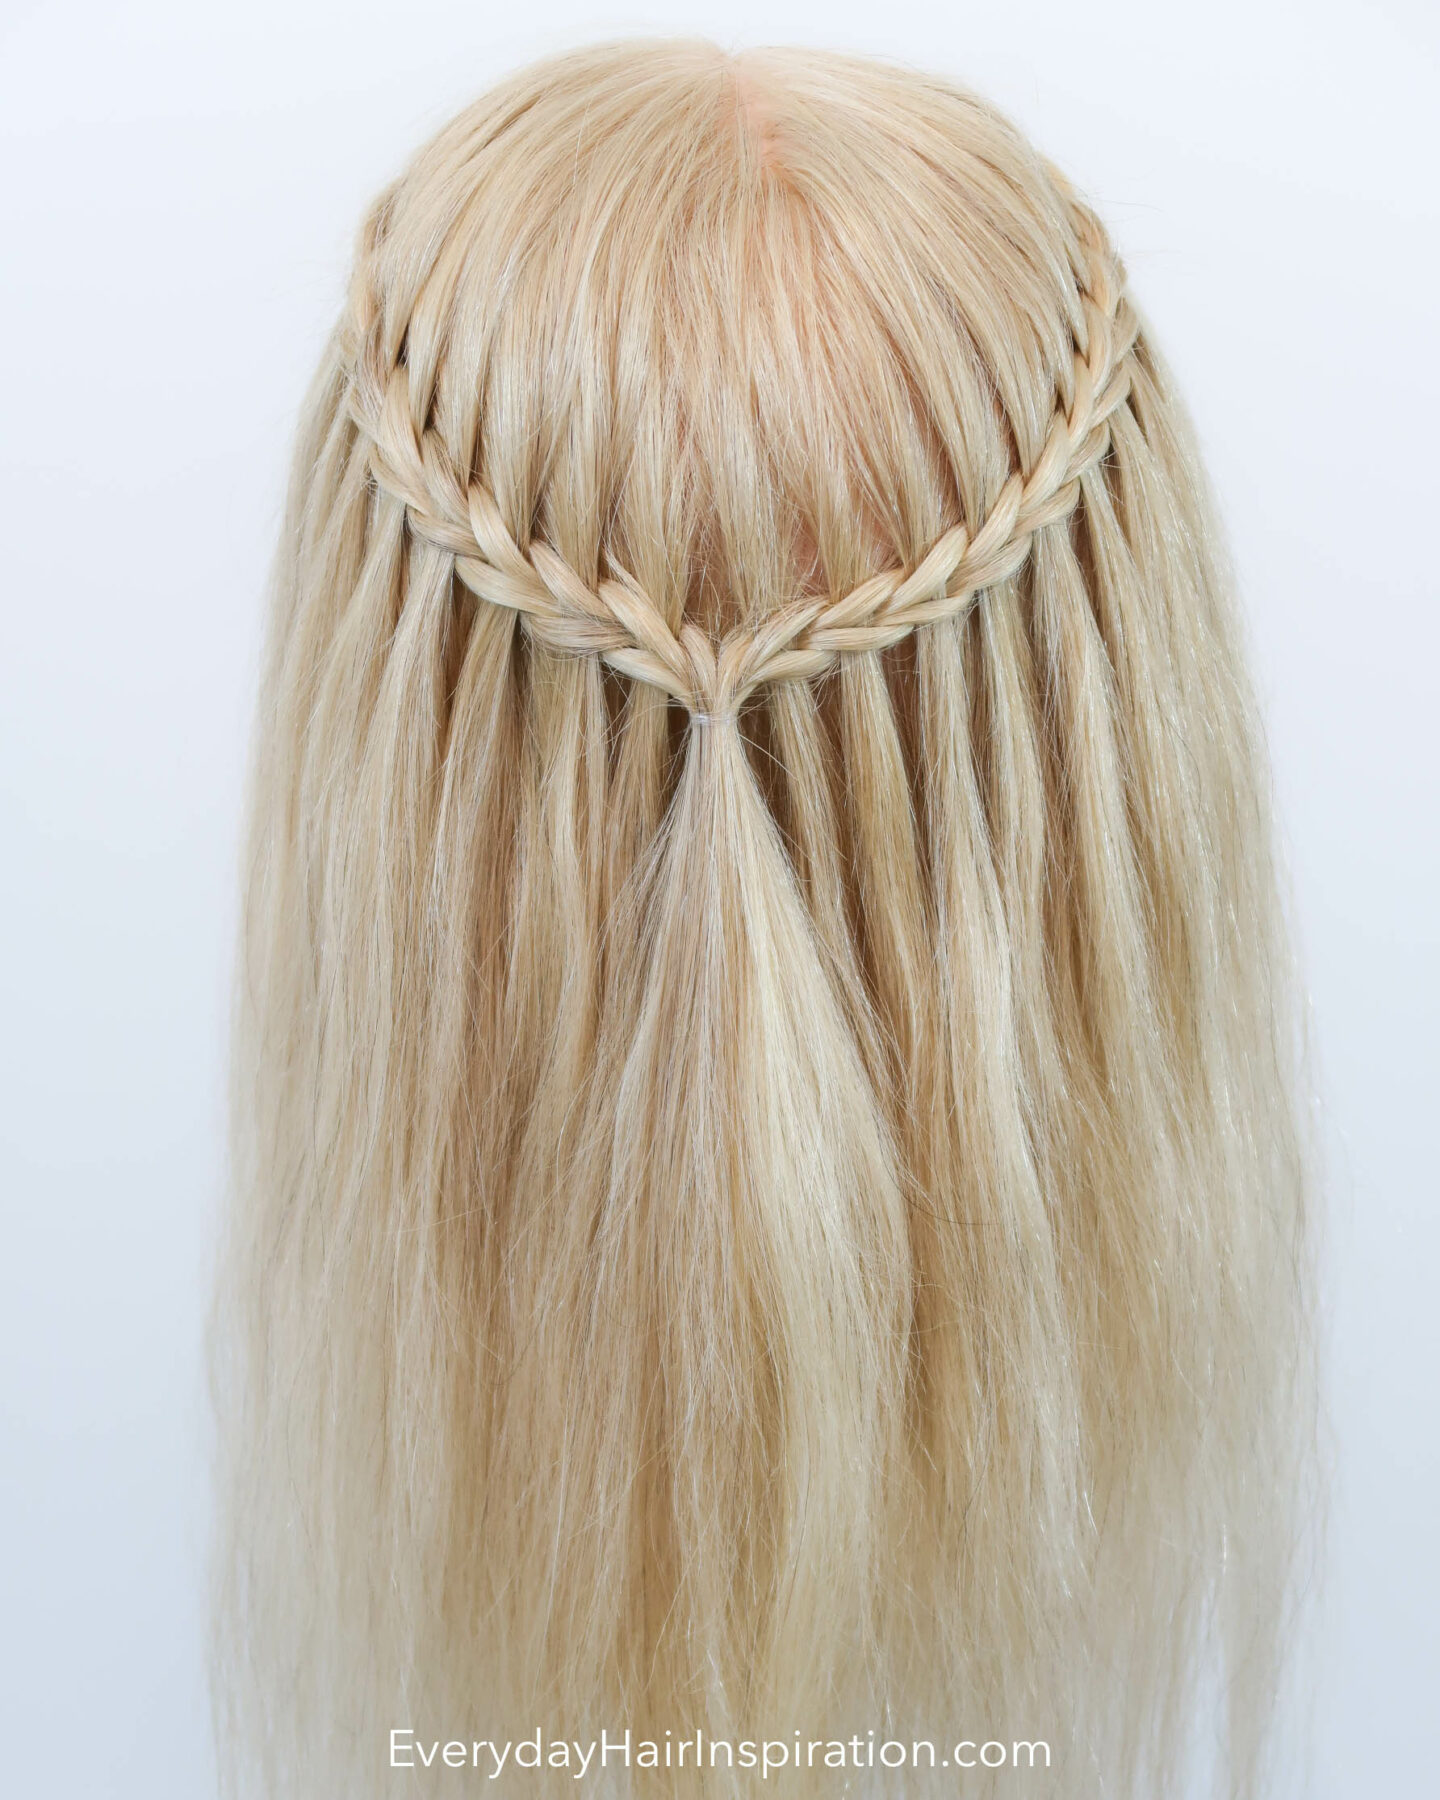 Blonde hairdresser head with a half up half down hair styles with a scissor waterfall braid, seen from the back.